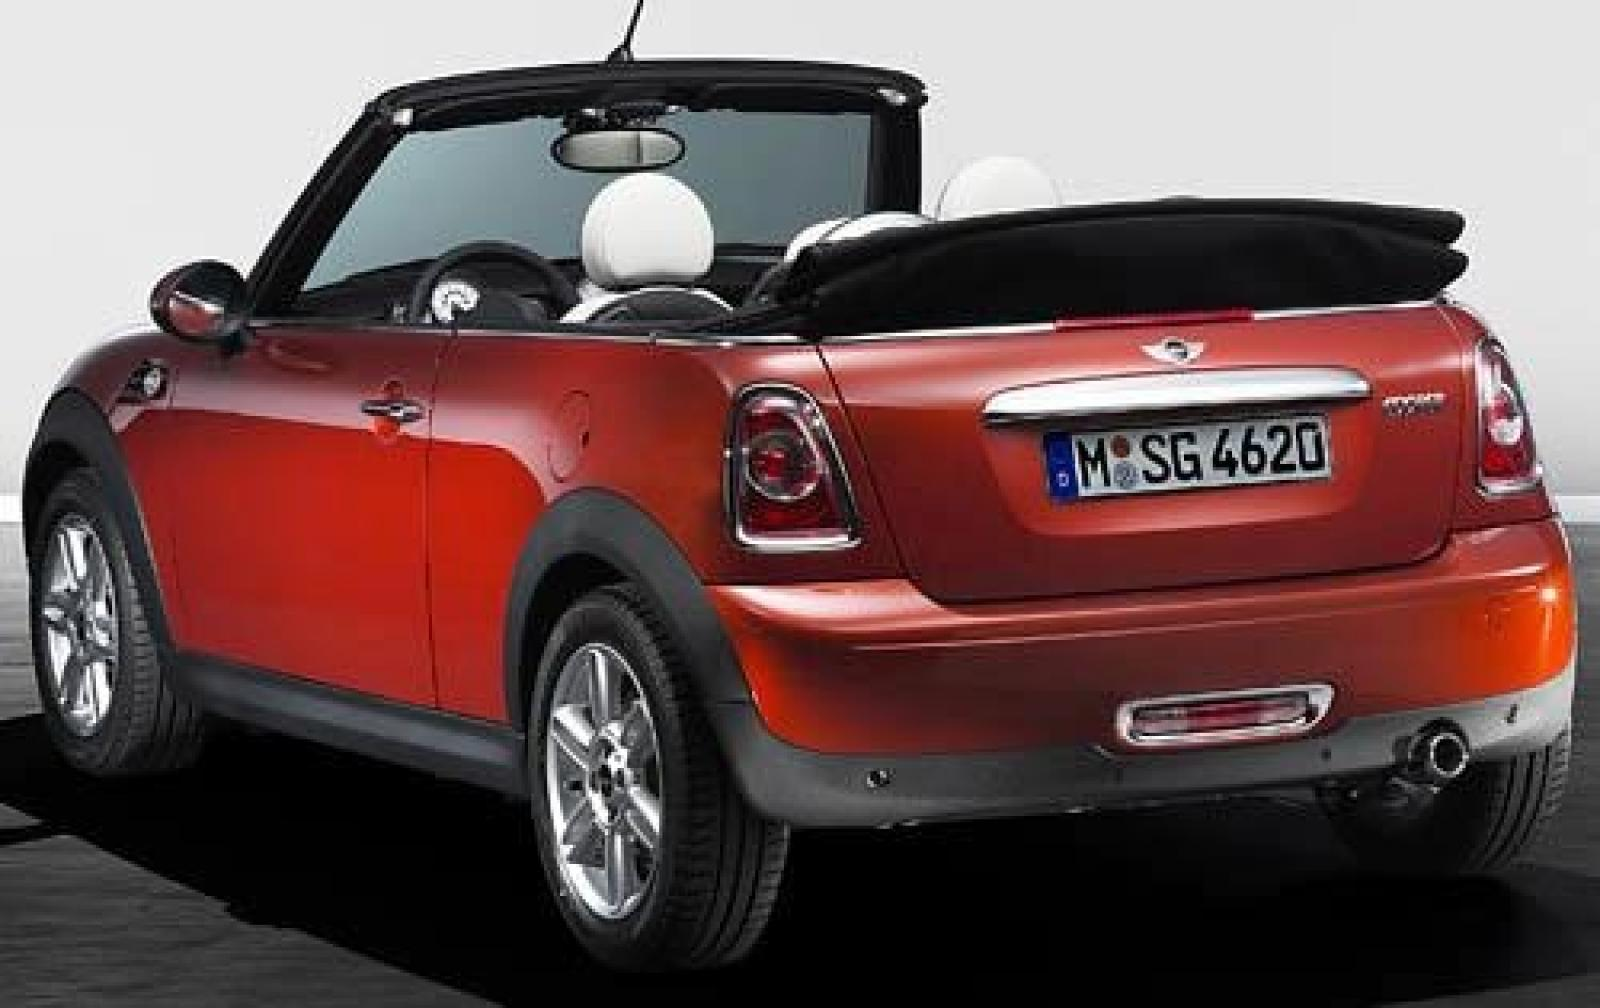 2011 mini cooper information and photos zombiedrive. Black Bedroom Furniture Sets. Home Design Ideas